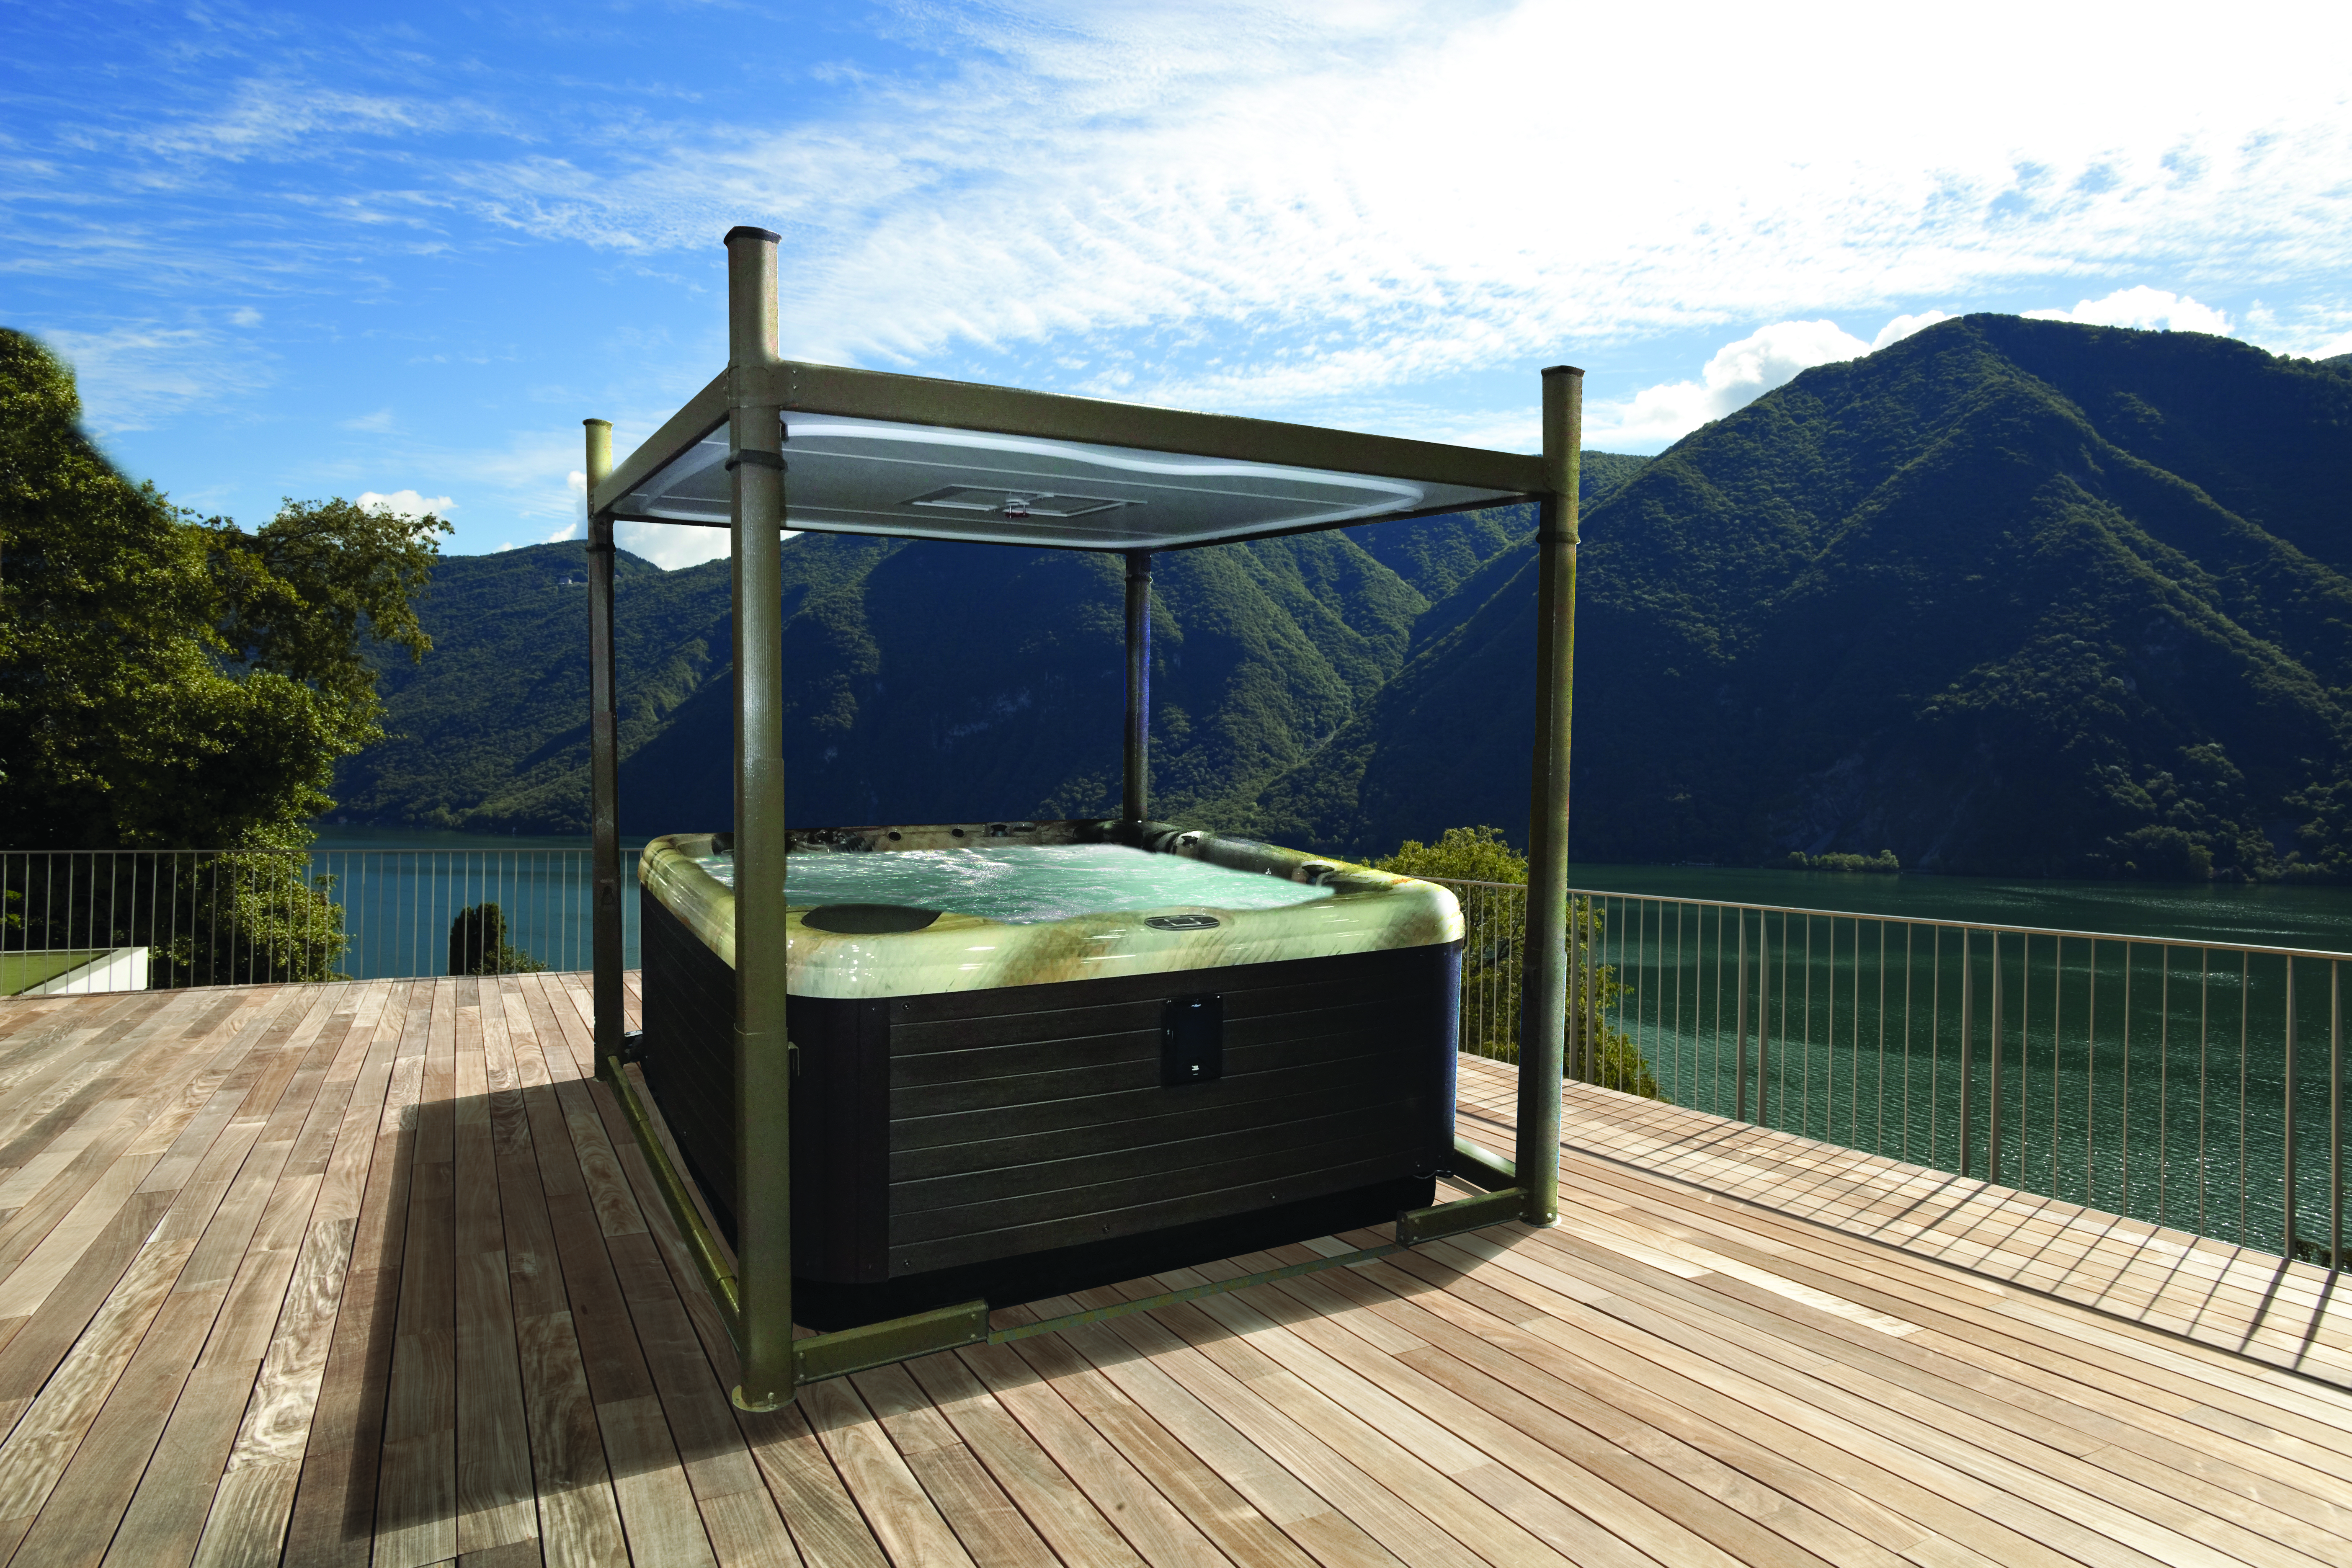 rock universal in ground rocks small tubs show swimming spa hot feb allen tub pools at custom